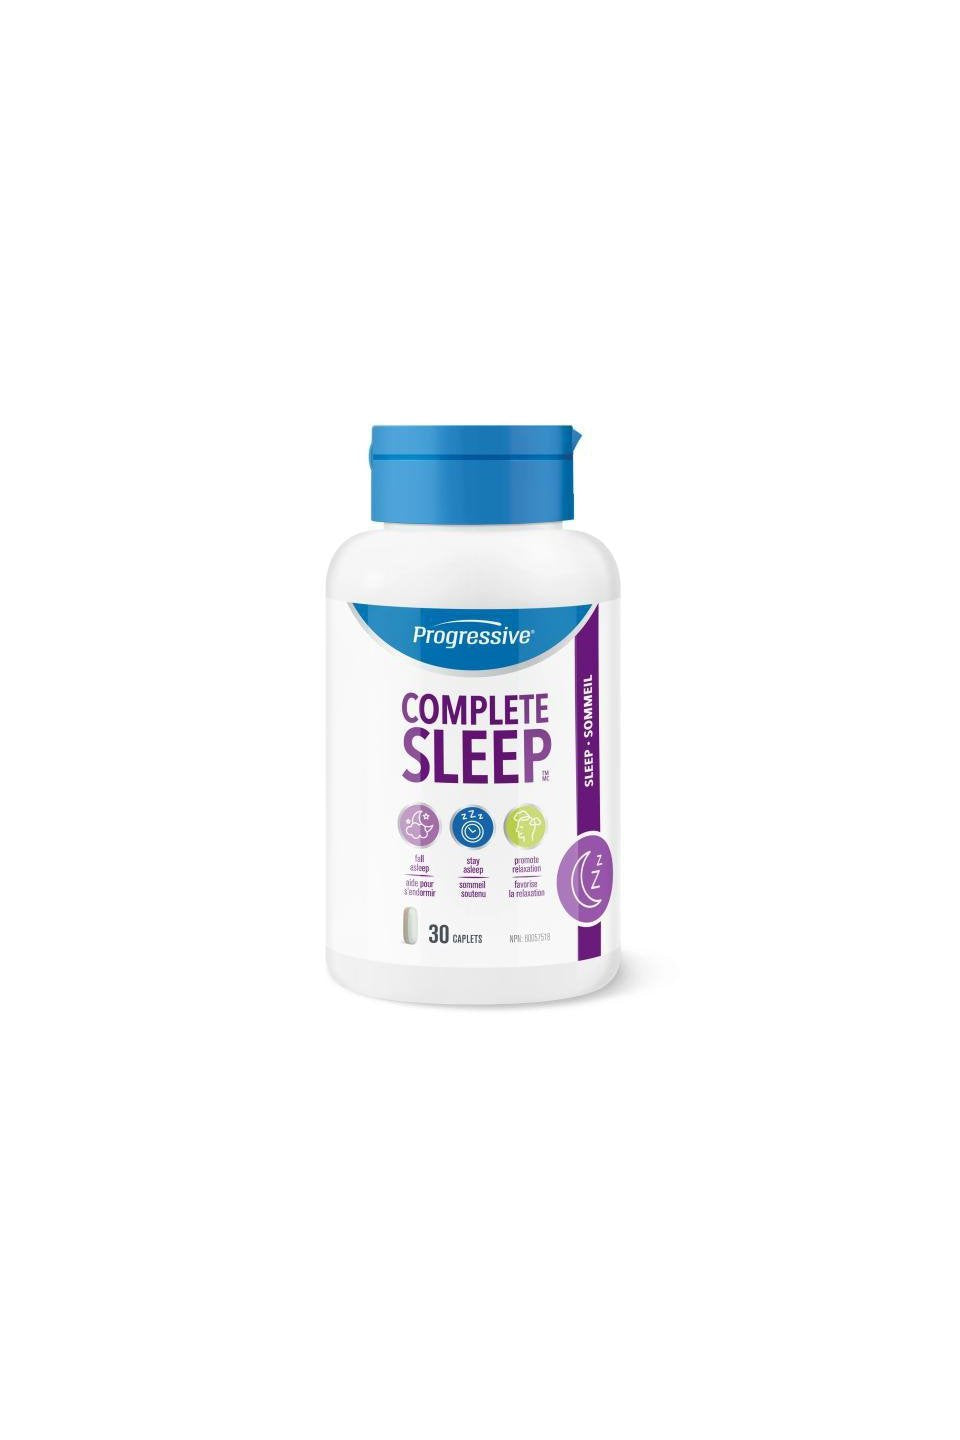 Progressive Complete Sleep 30s